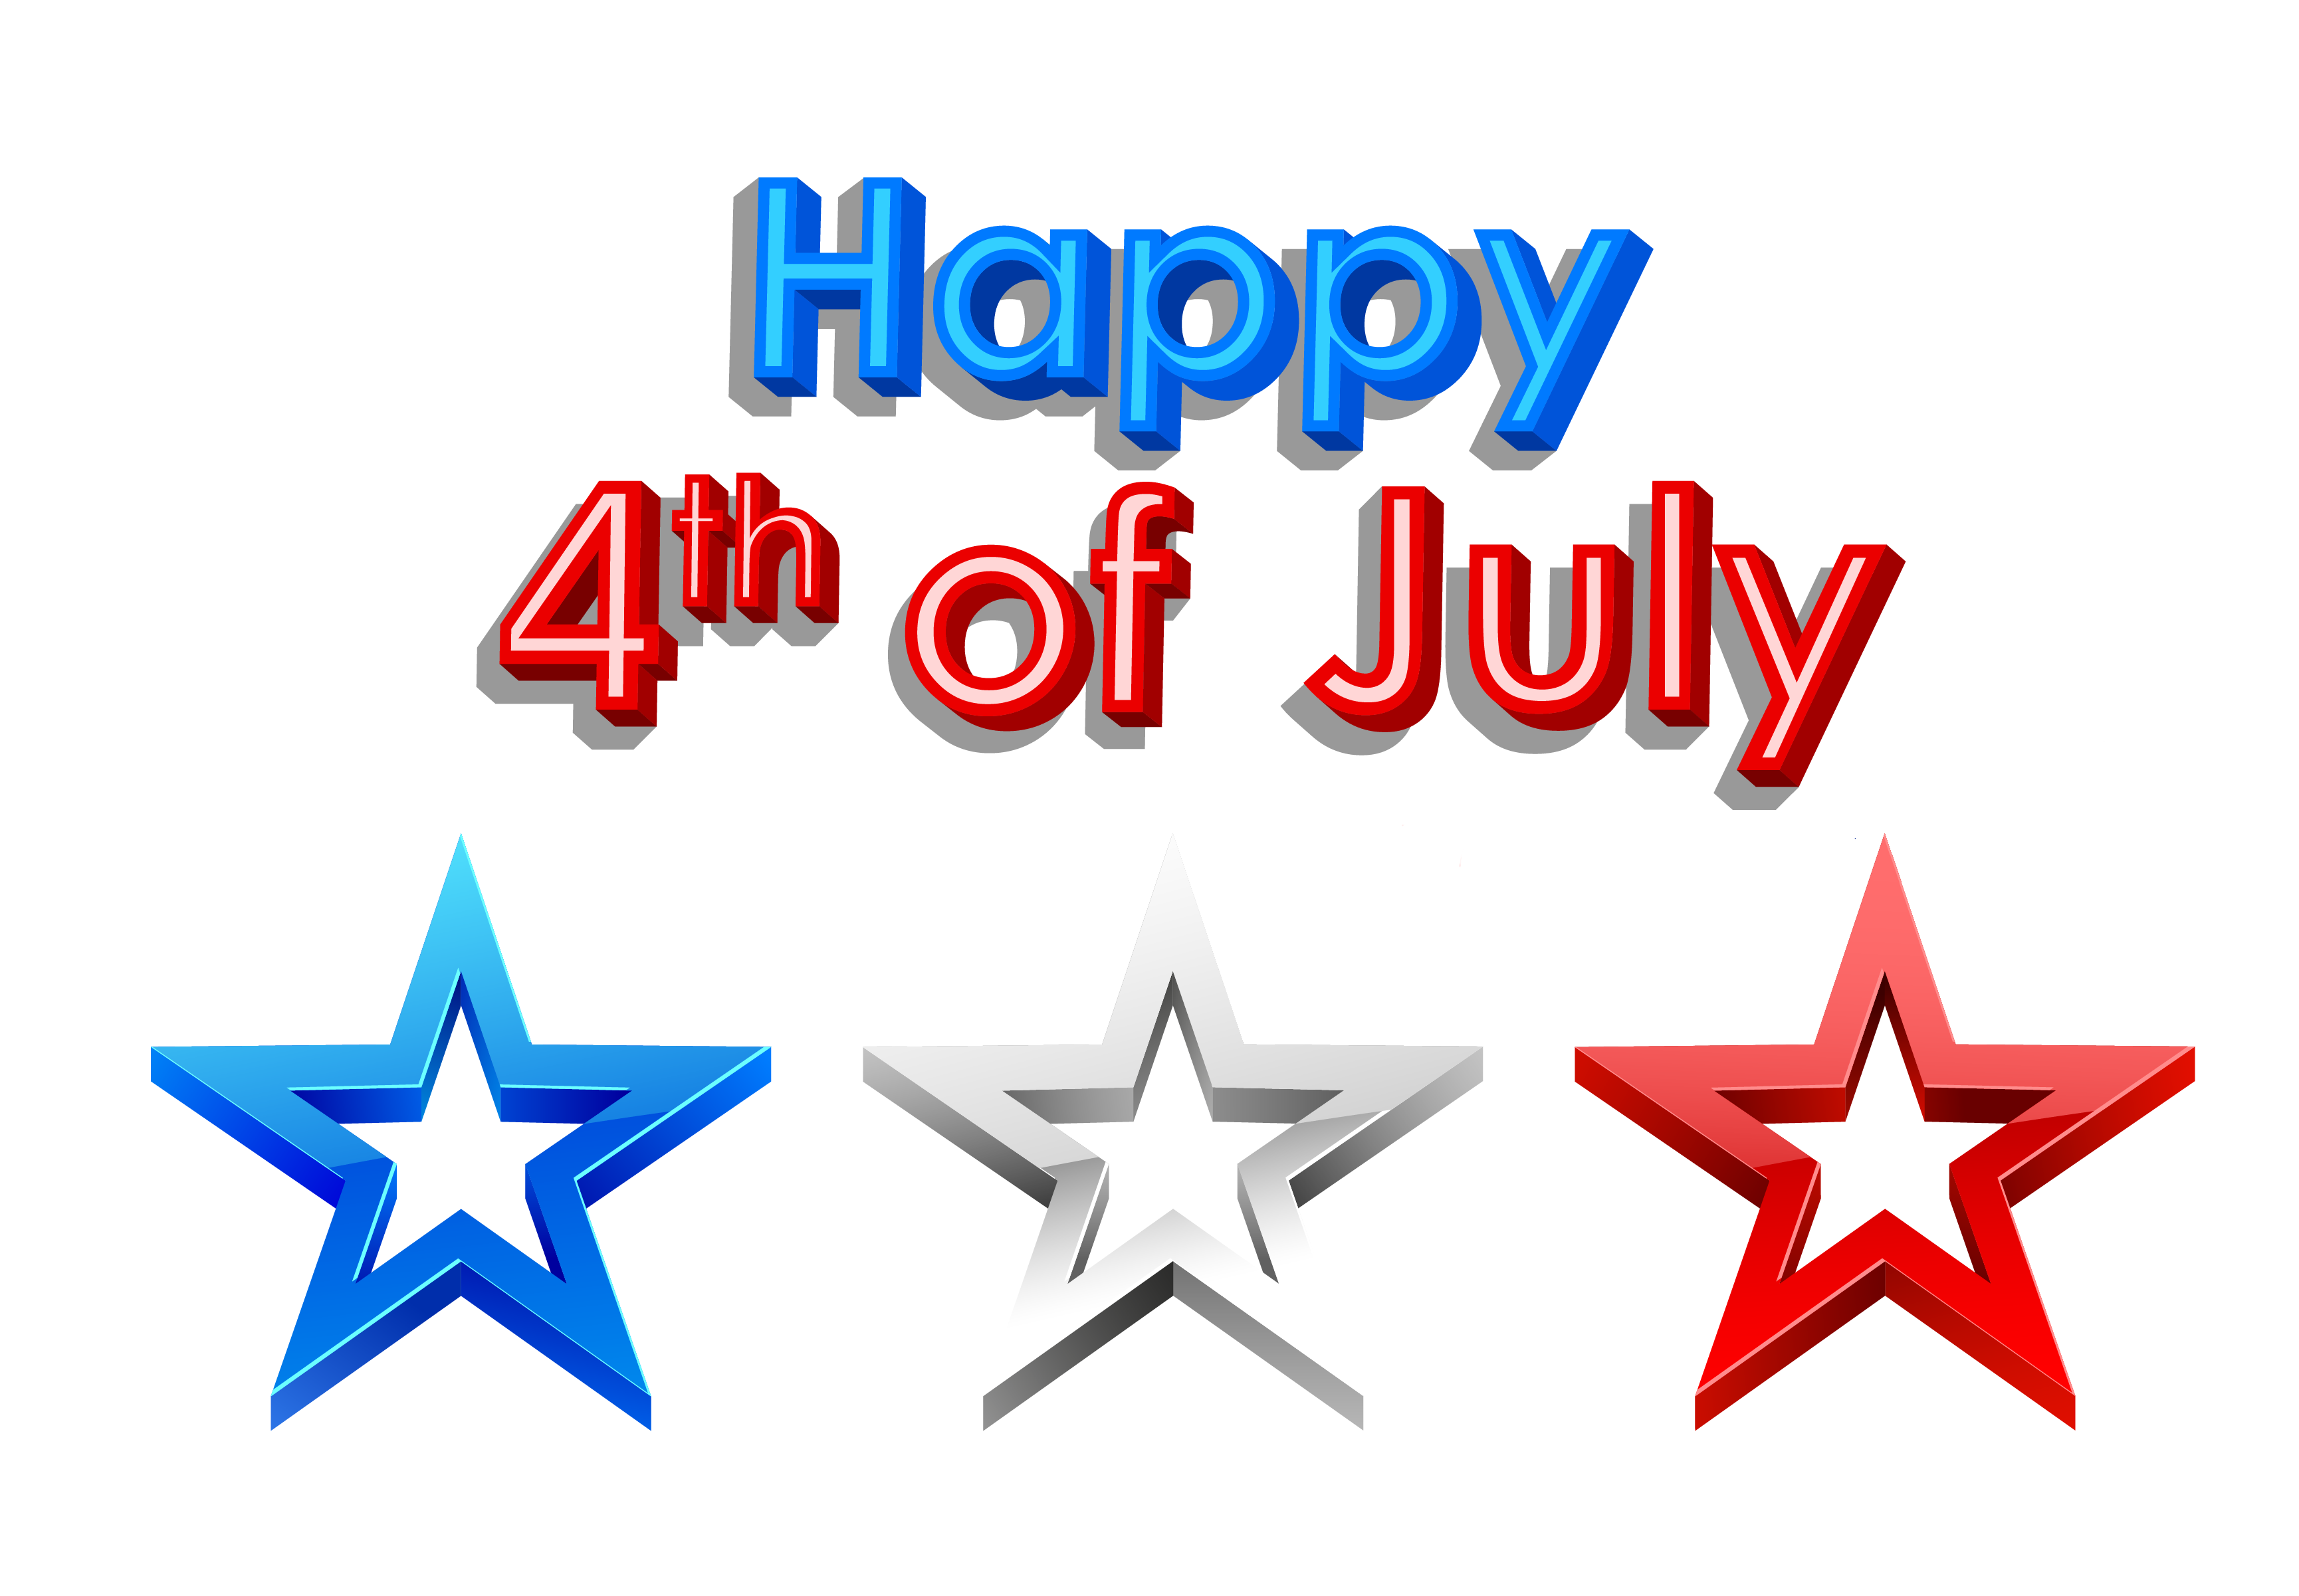 4th Of July Fireworks Clipart Png Happy -4th Of July Fireworks Clipart Png Happy 4th Of July Png Clipart-2